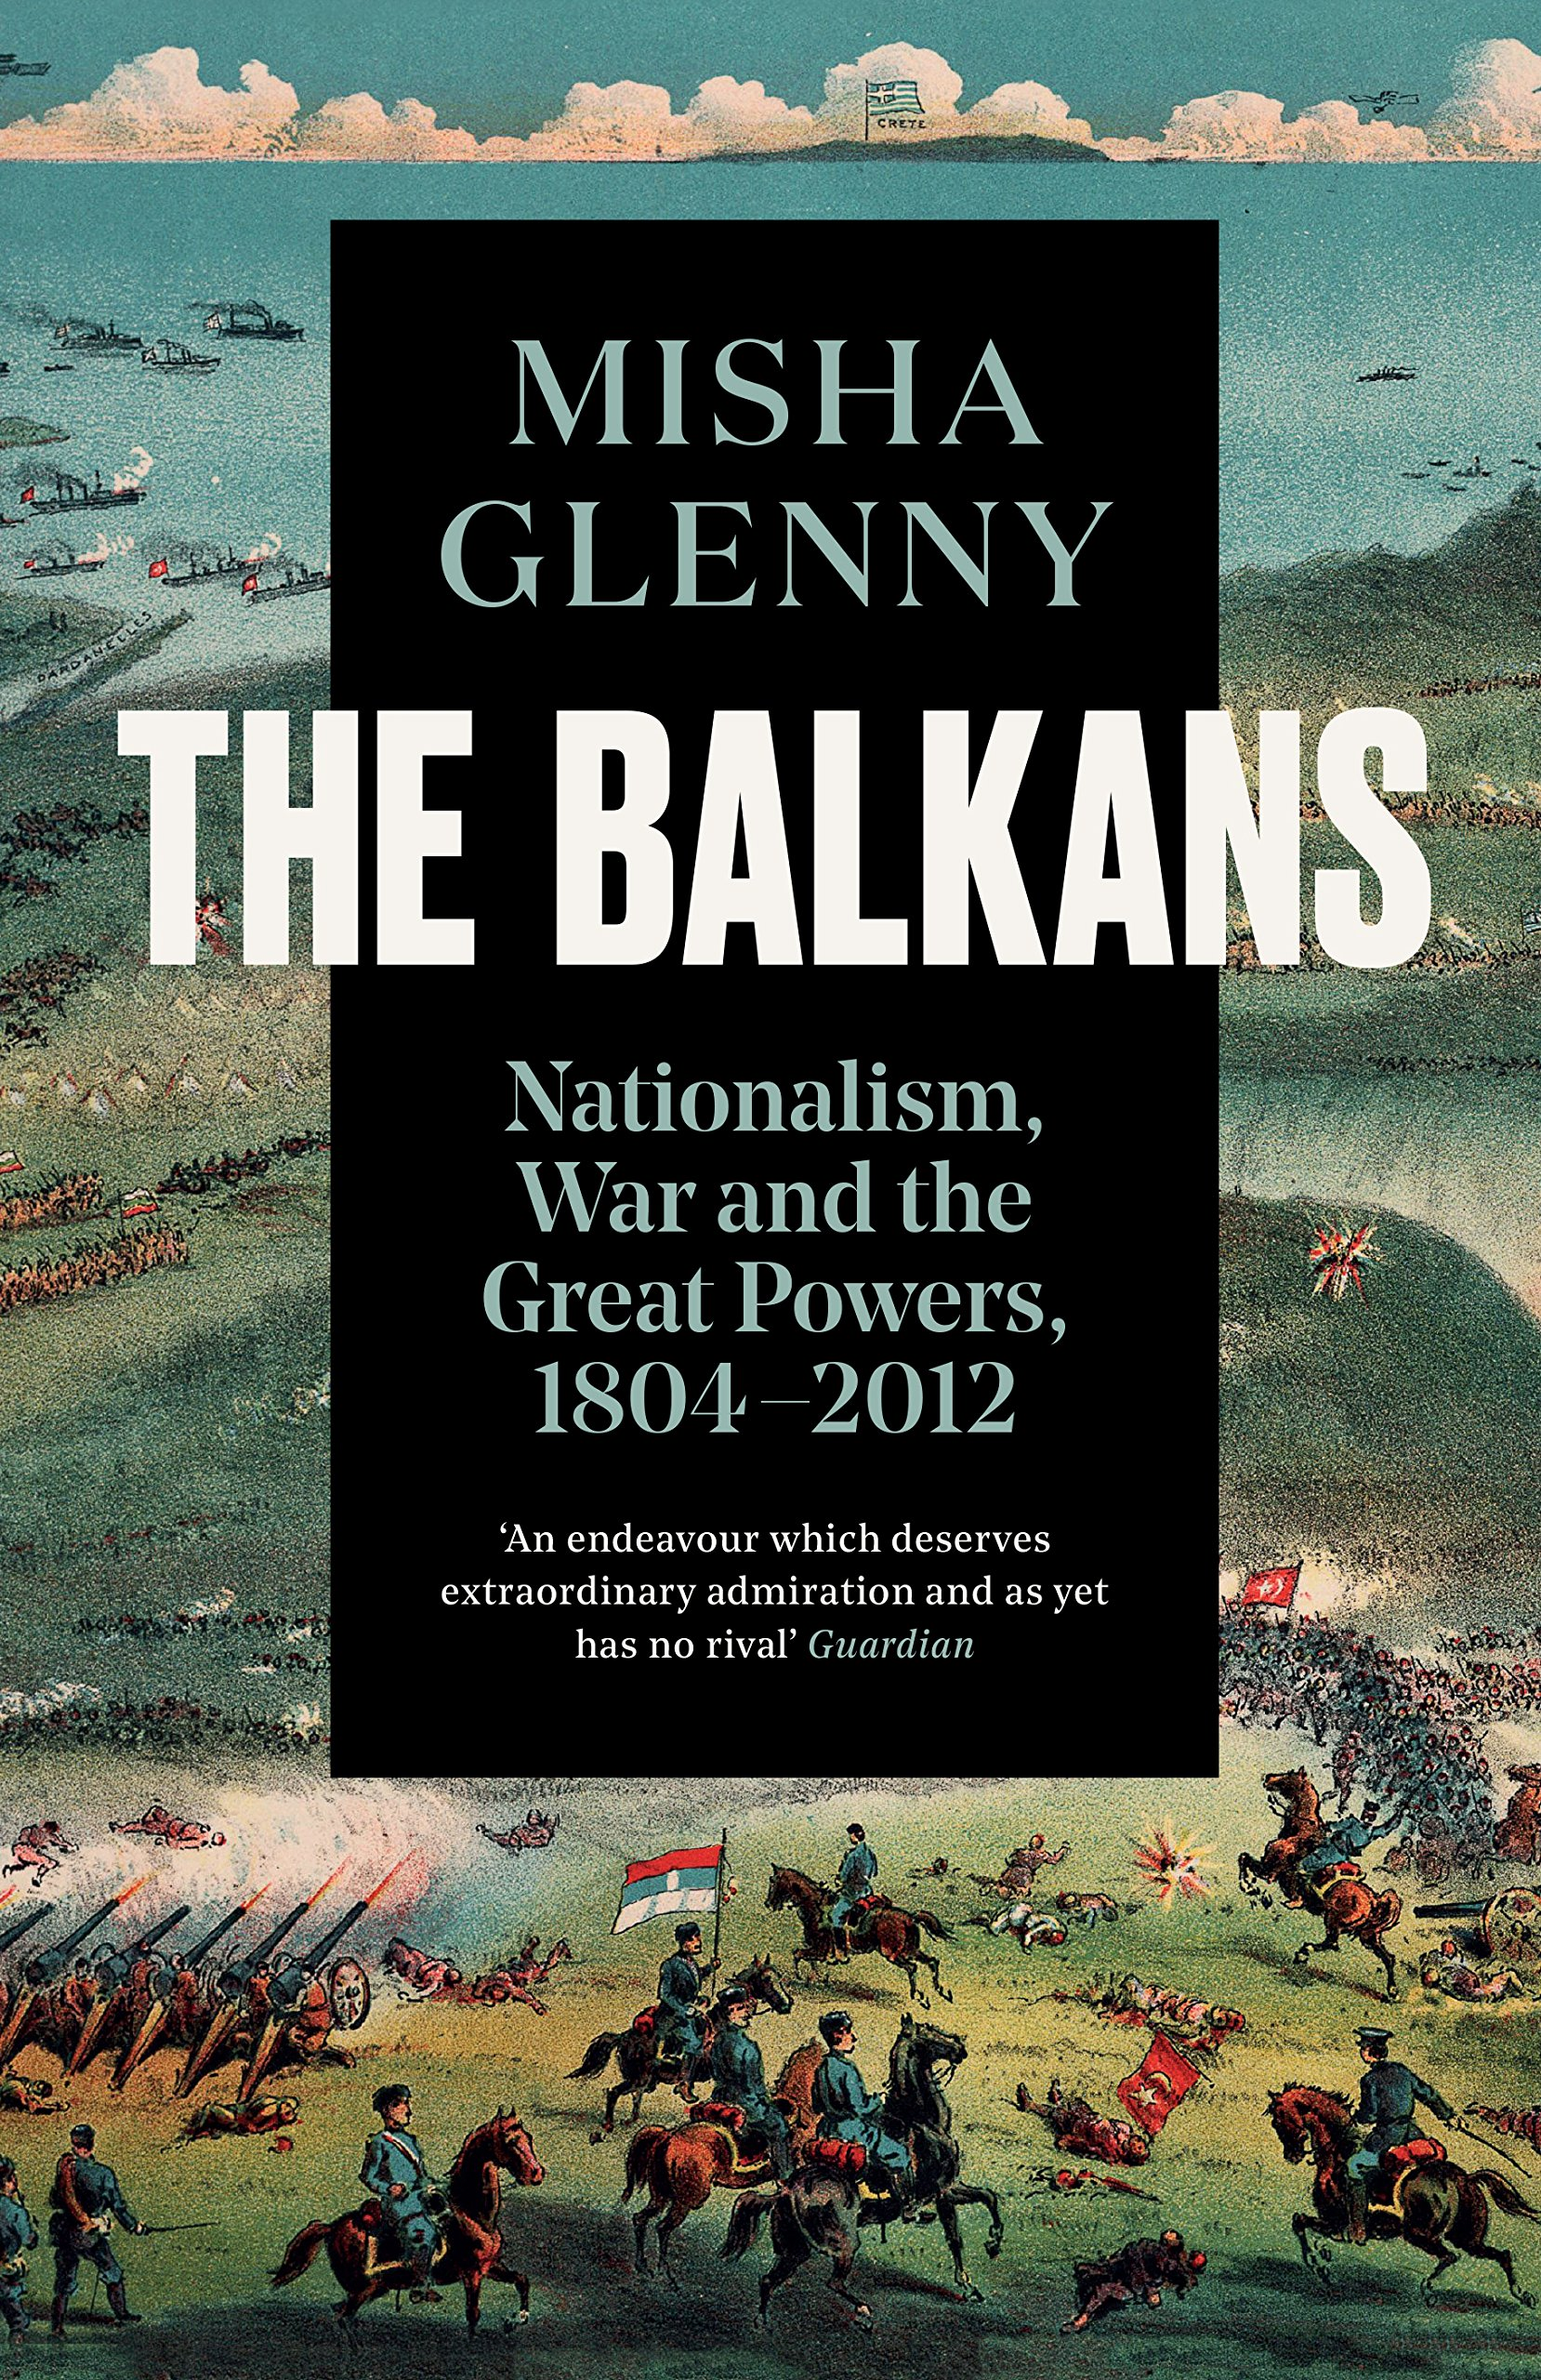 The Balkans, 1804-2012: Nationalism, War and the Great